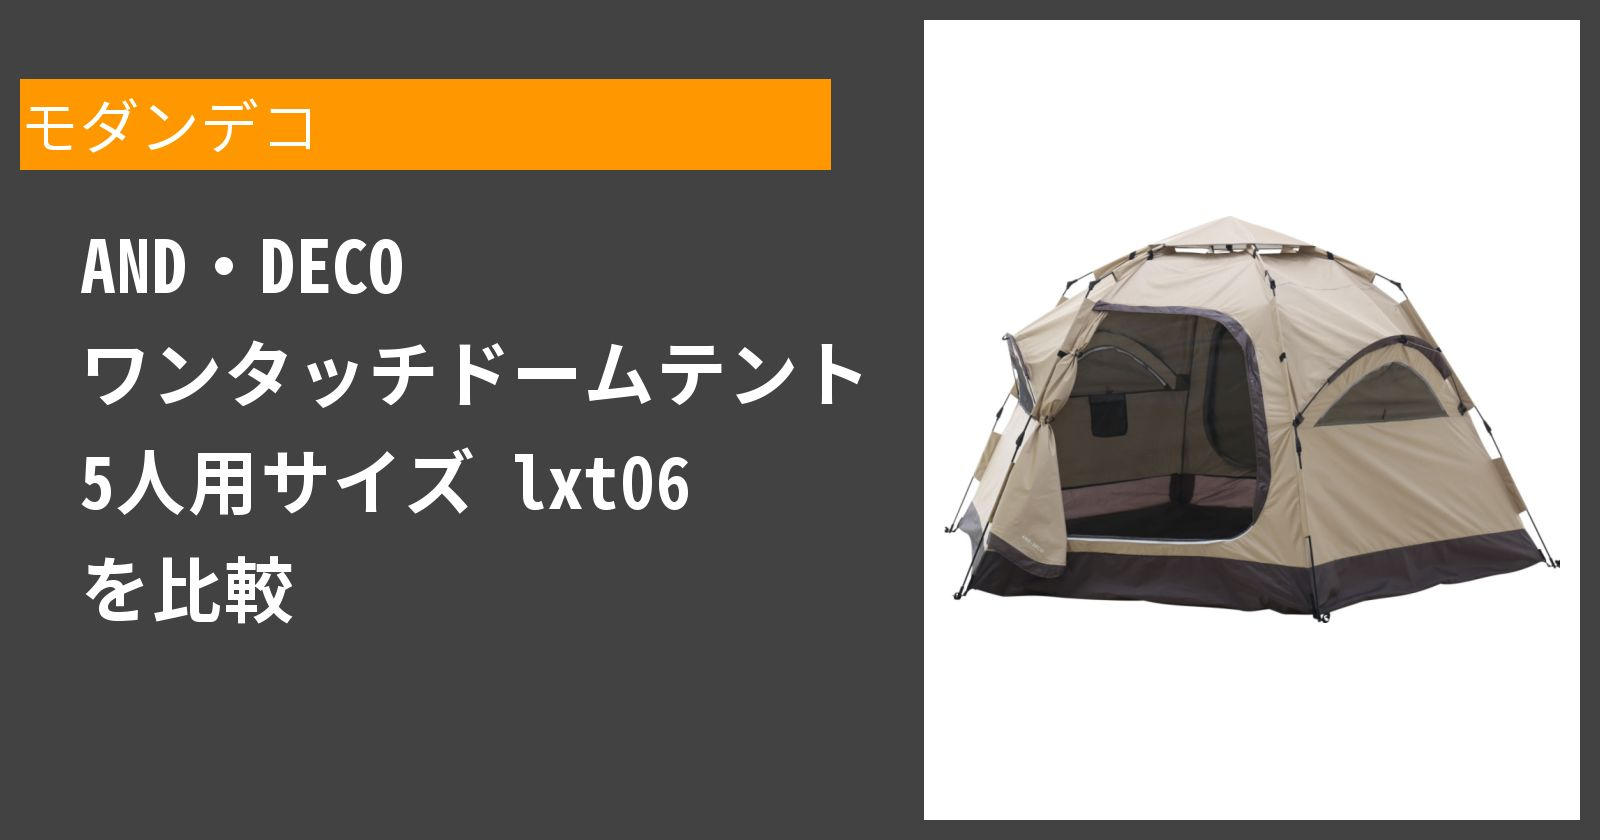 AND・DECO ワンタッチドームテント 5人用サイズ lxt06を徹底評価